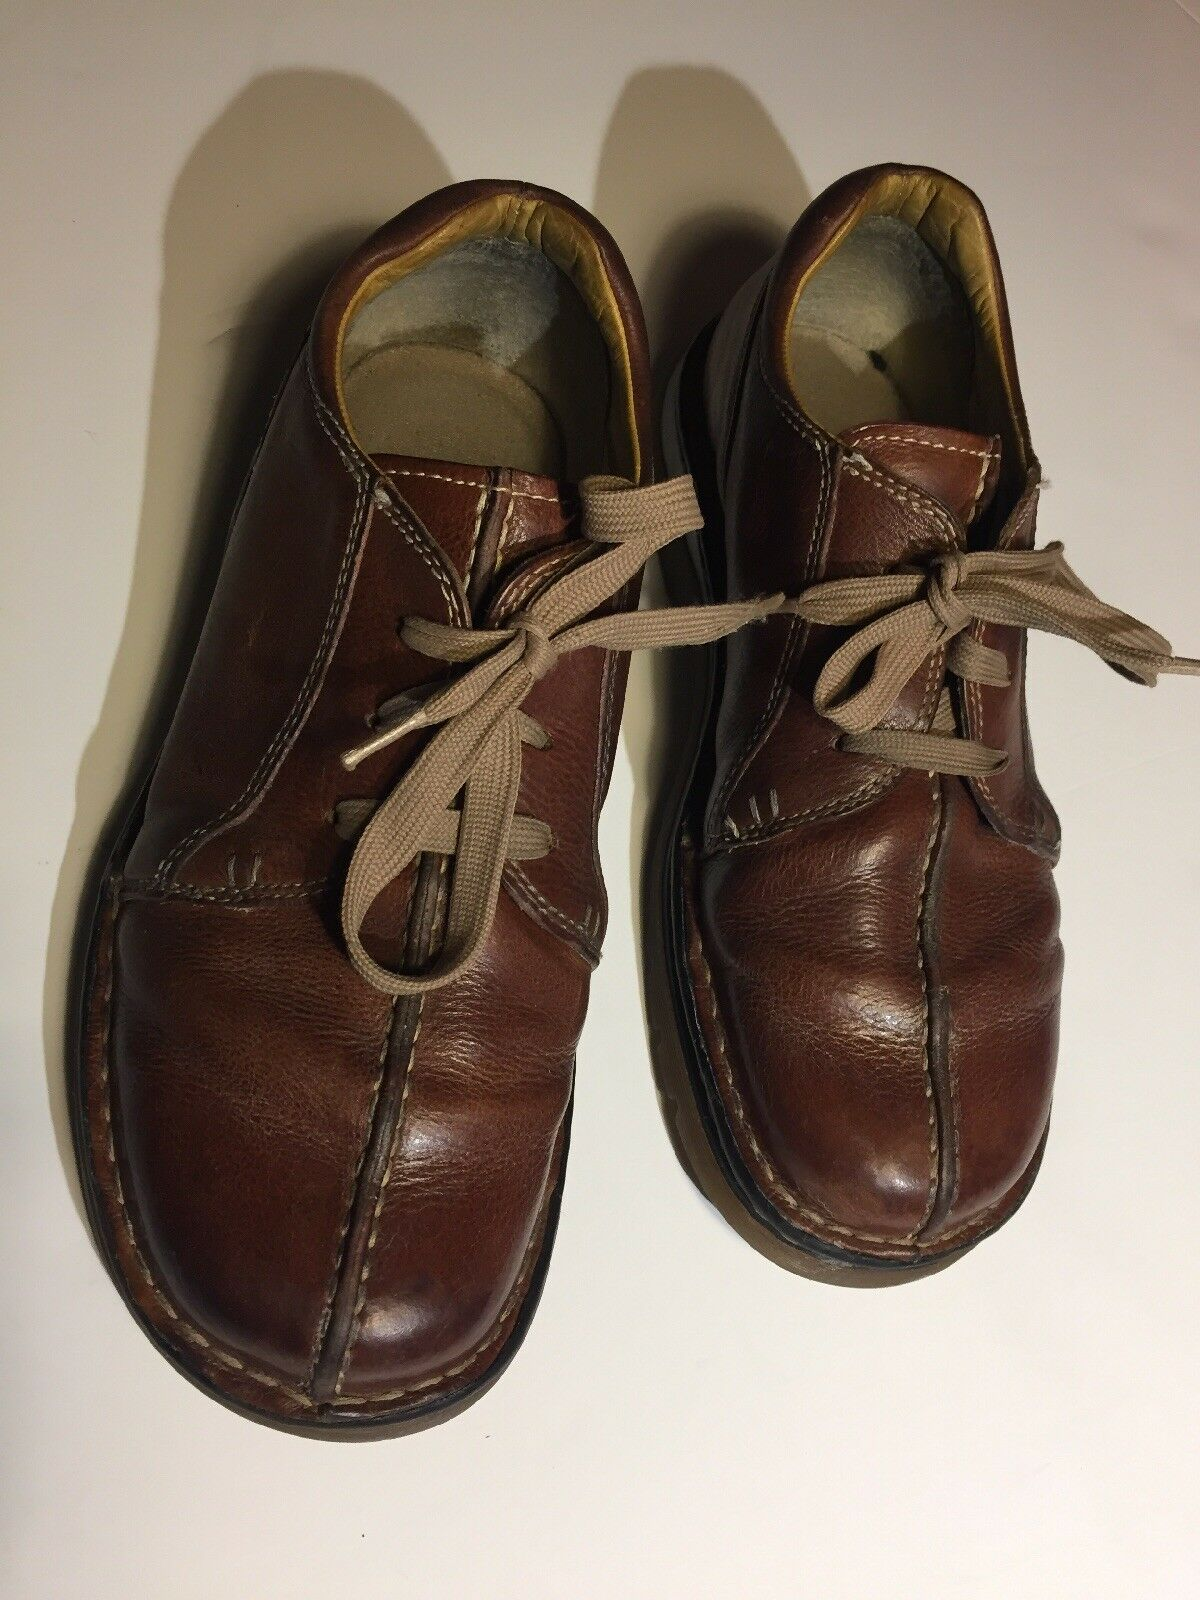 Dr Doc Martens 11232 Brown Leather Split Toe Oxfords shoes US 10 GREAT CONDITION